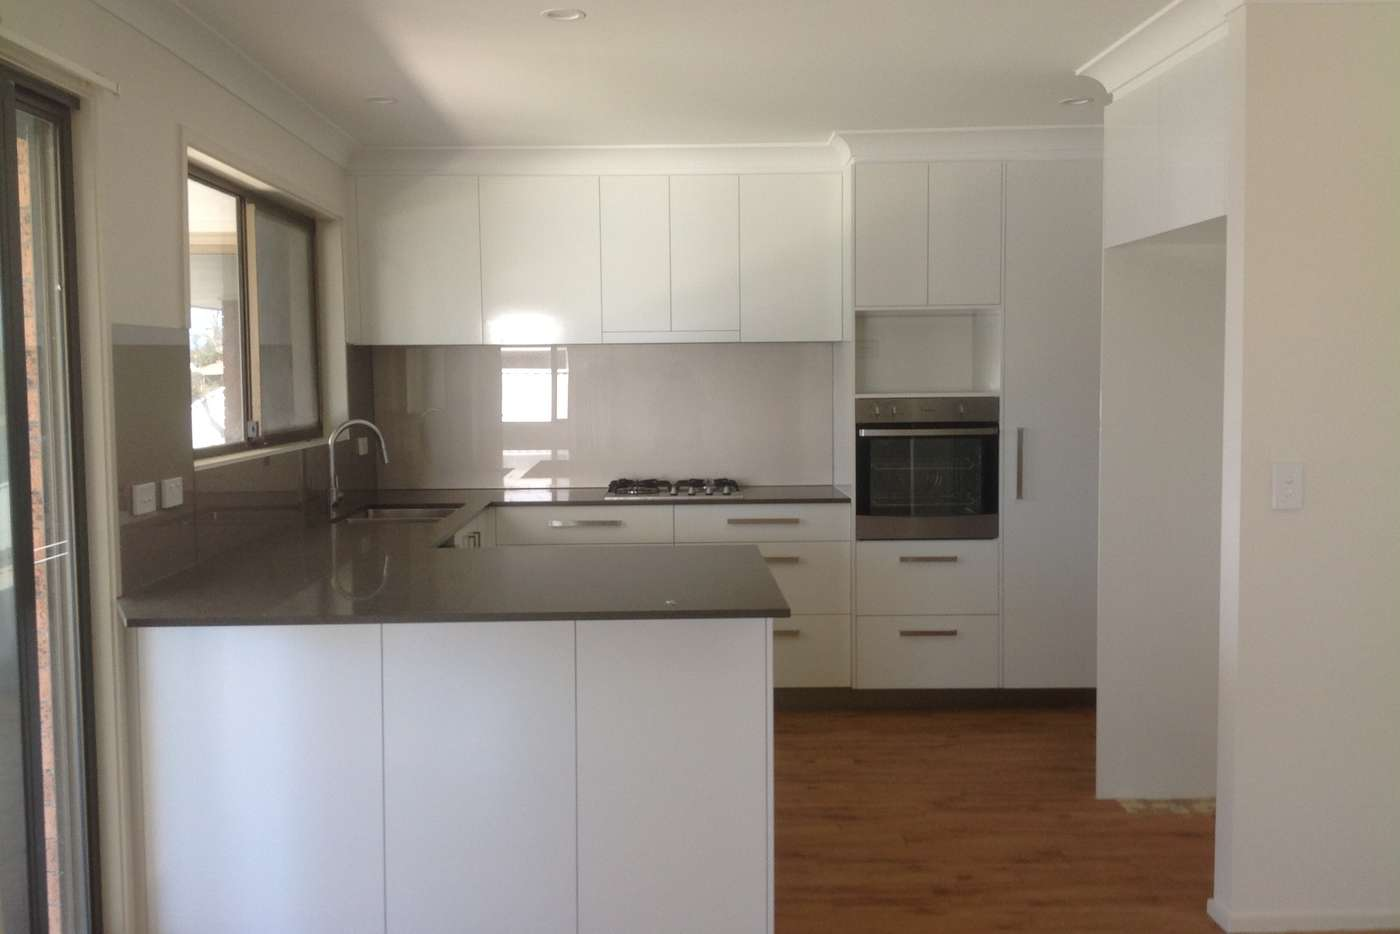 Seventh view of Homely house listing, 32 Honeyeater Dr, Burleigh Waters QLD 4220